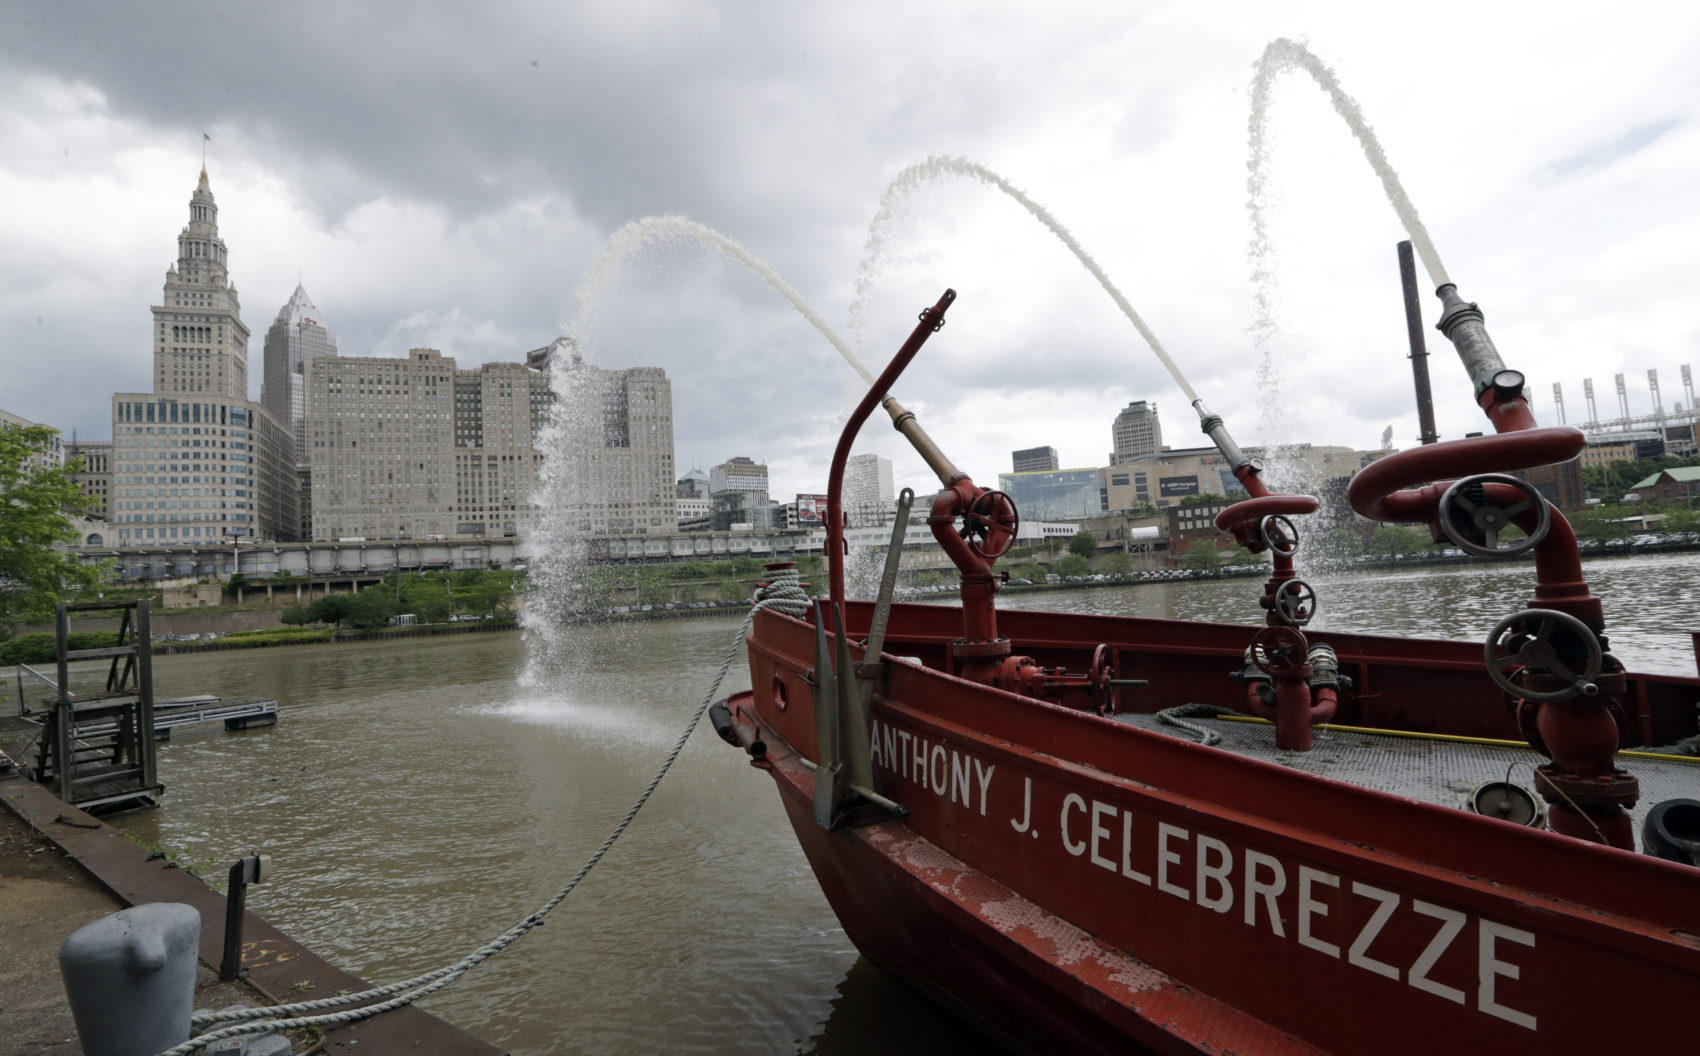 50 Years Ago, Cleveland's Cuyahoga River Fire Helped Ignite